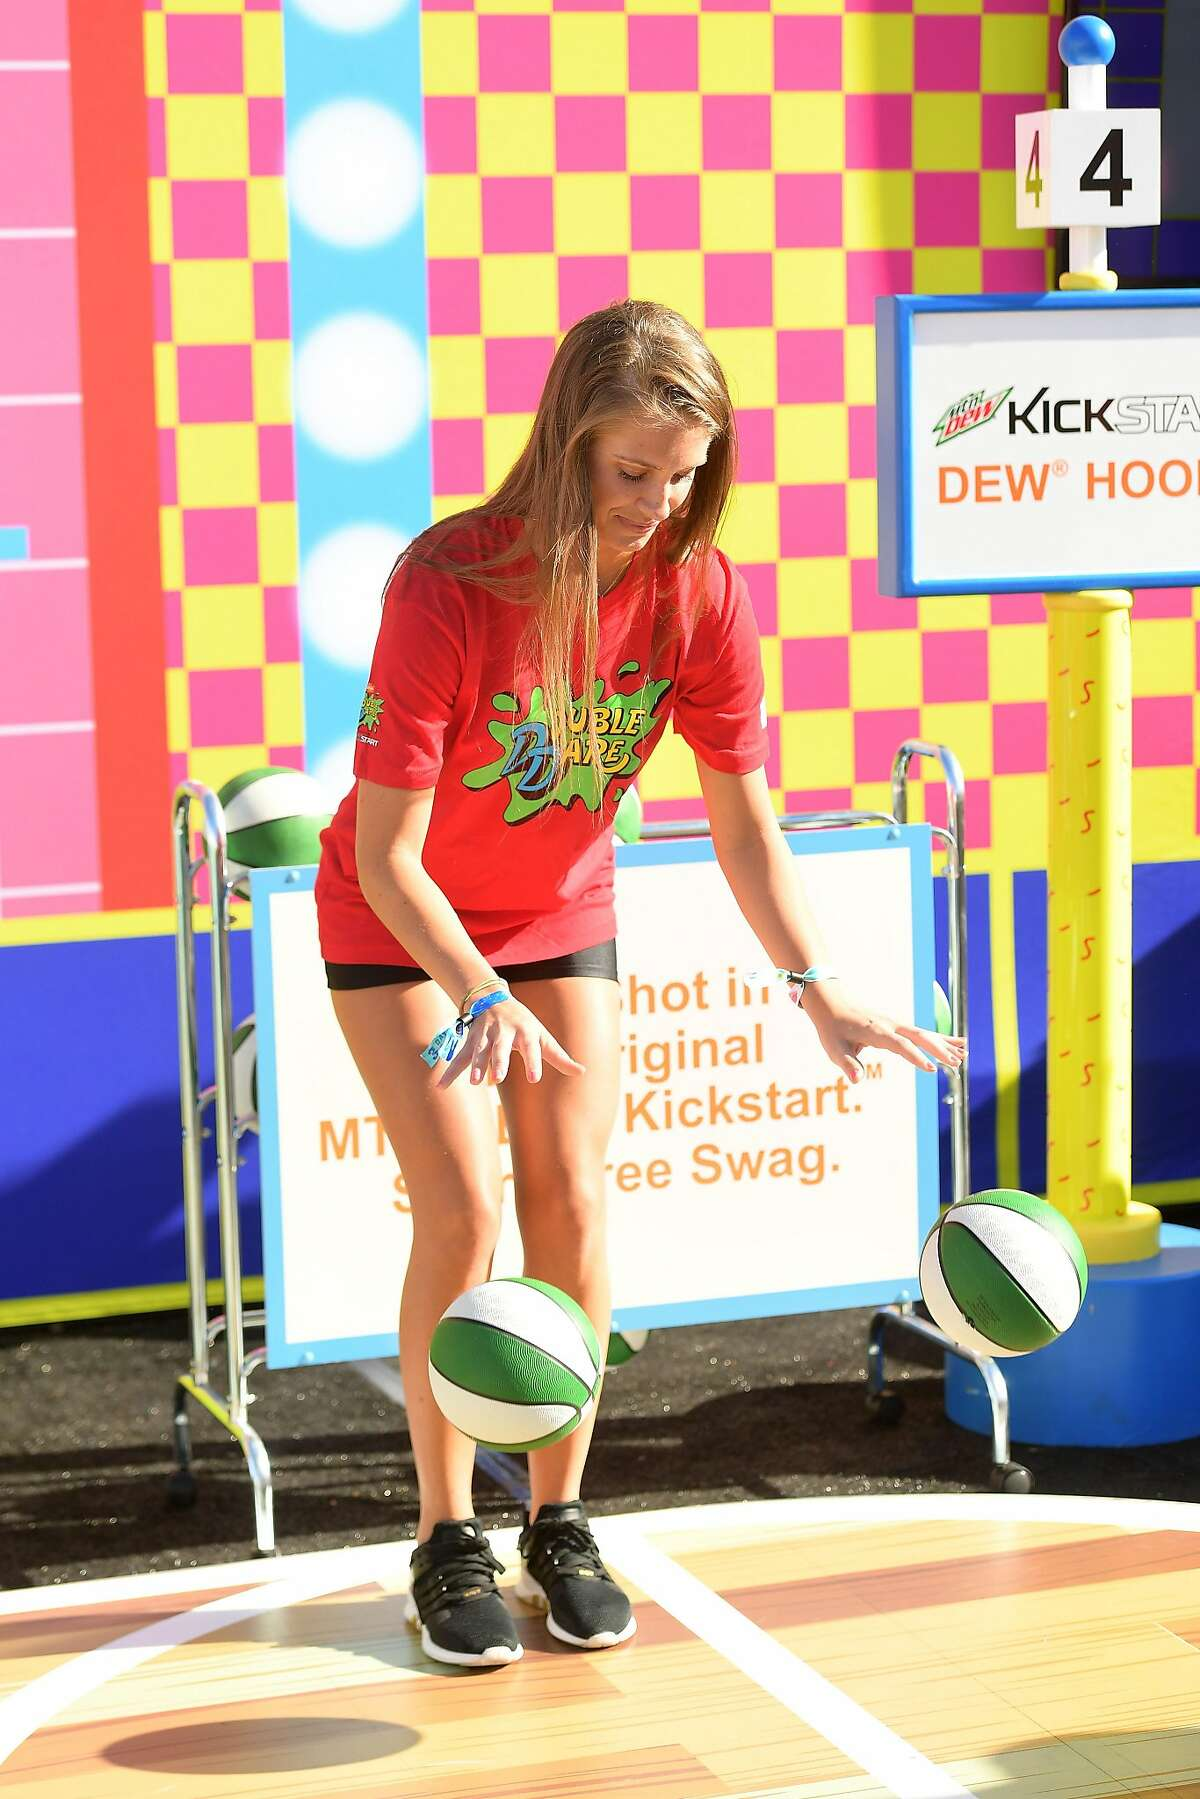 SAN FRANCISCO, CA - JUNE 01: Jenna Compono attends Double Dare presented by Mtn Dew Kickstart at Comedy Central presents Clusterfest on June 1, 2018 in San Francisco, California. (Photo by Matt Winkelmeyer/Getty Images for Mountain Dew)